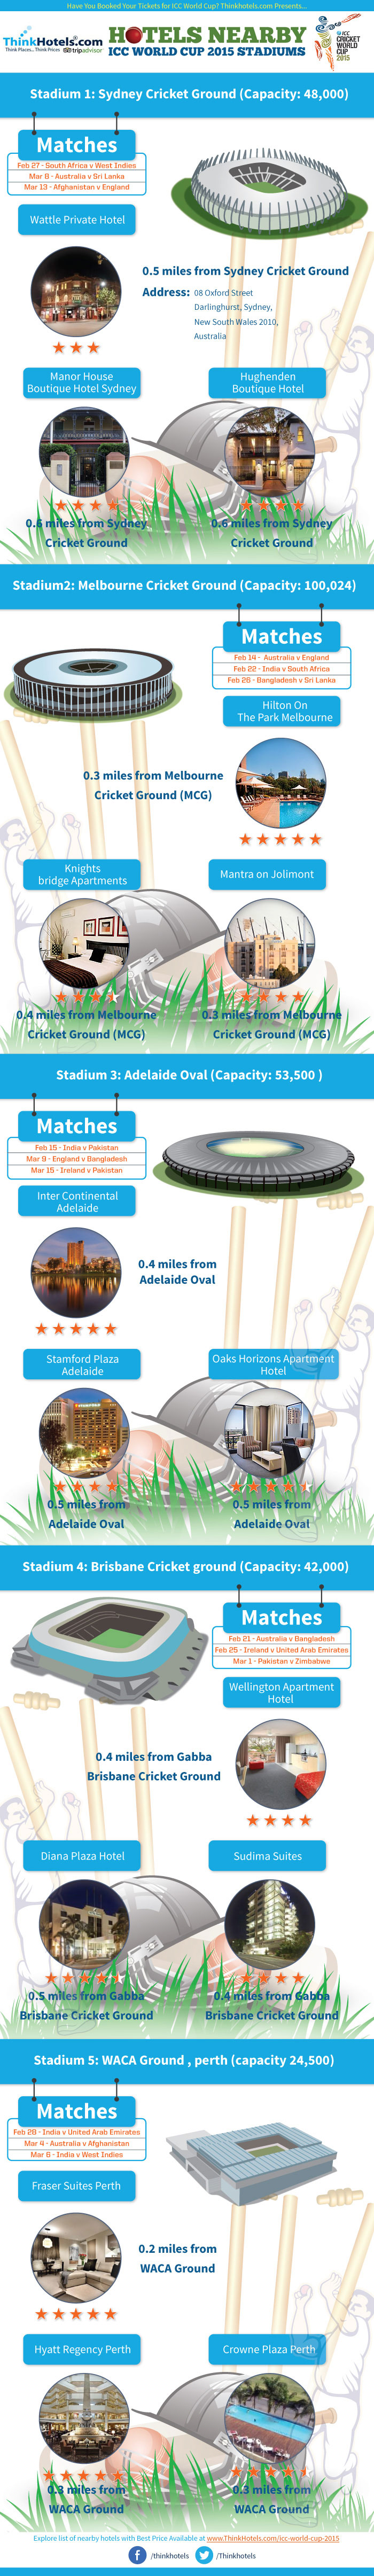 Hotels Near ICC World Cup 2015 Stadiums